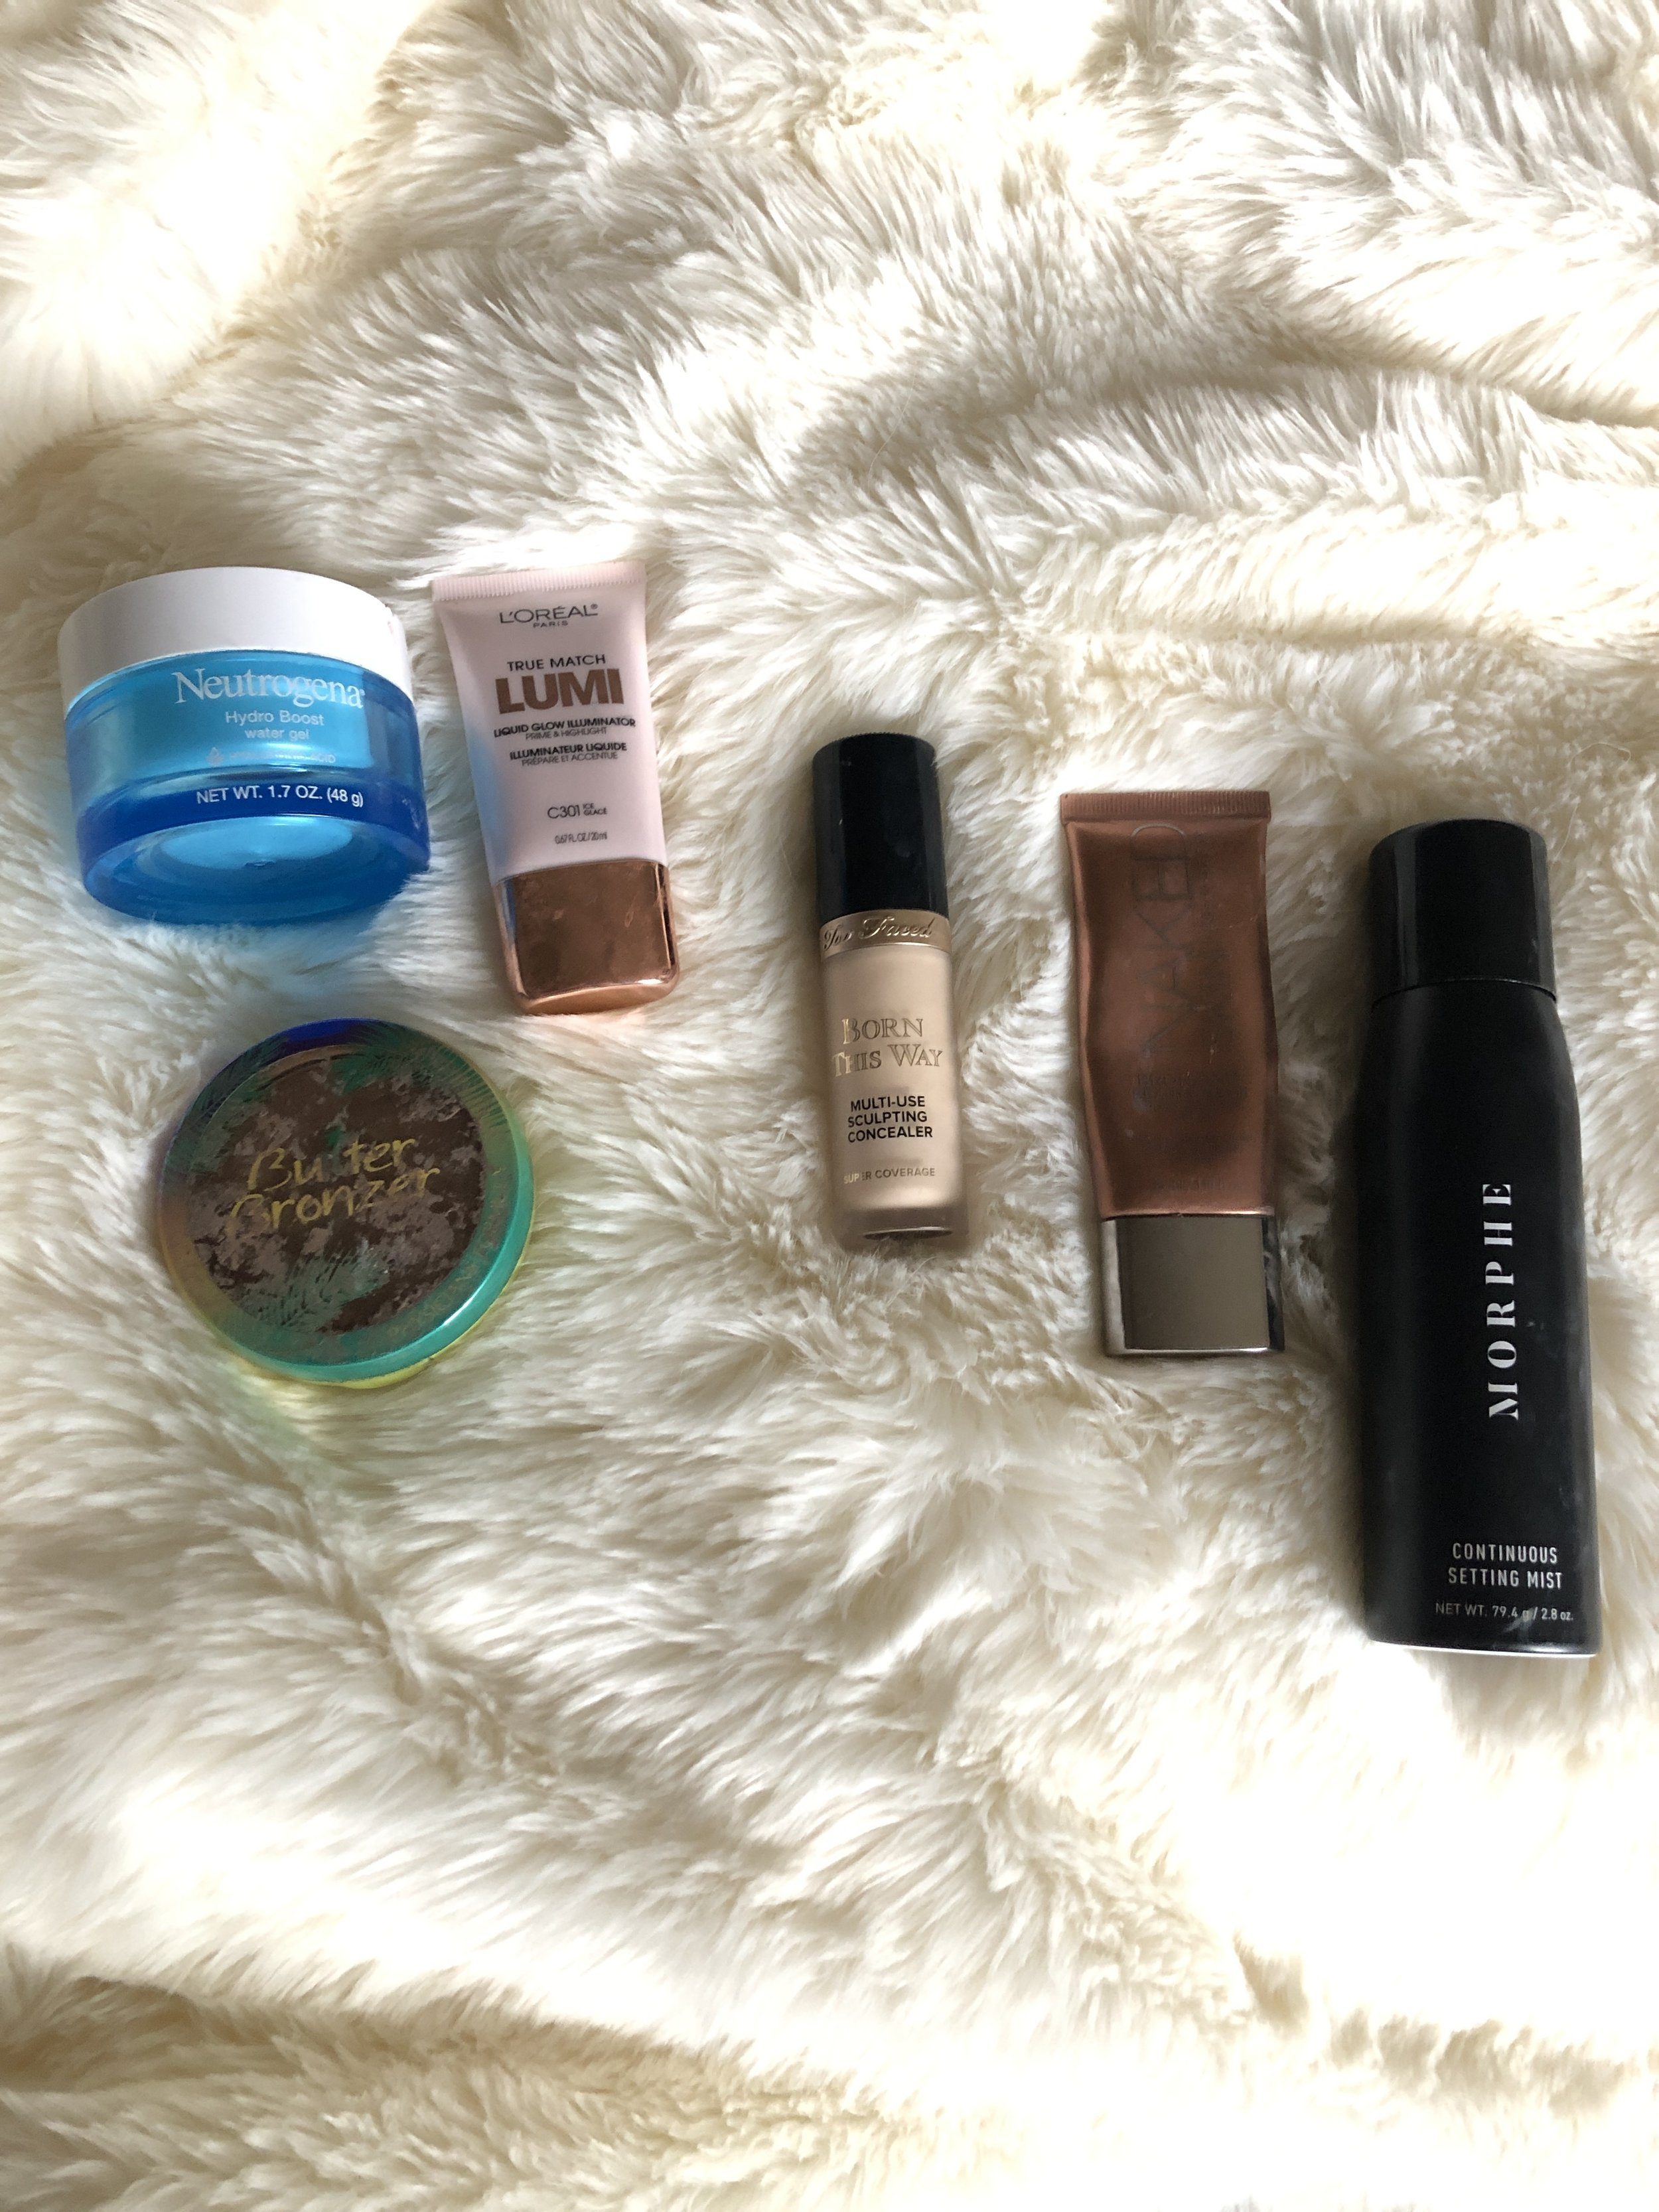 neutrogena hydro boost watergel, physican's formula butter bronzer, loreal lumi highlighter, born this way concealer, naked skin liquid bronzer, morphe setting spray,(not pictured- nars foundation)